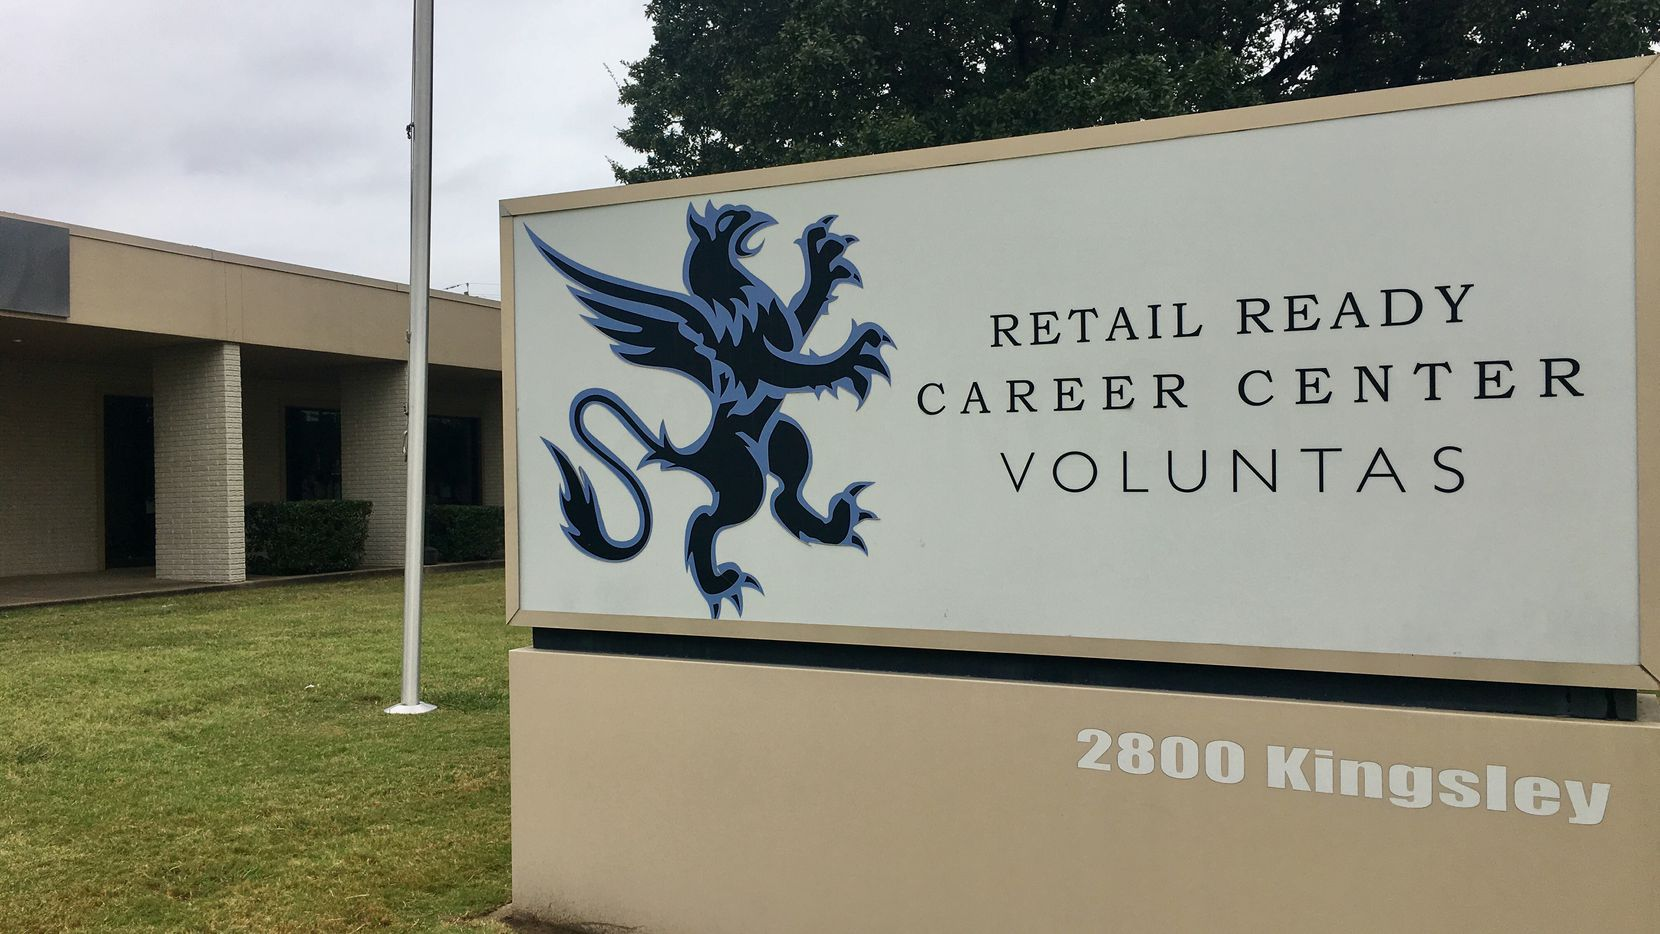 Retail Ready Career Center suddenly closed on Sept. 27, 2017 as federal authorities investigated the for-profit trade school. Jonathan Davis, the owner, has been convicted in federal court of fraud after a trial.